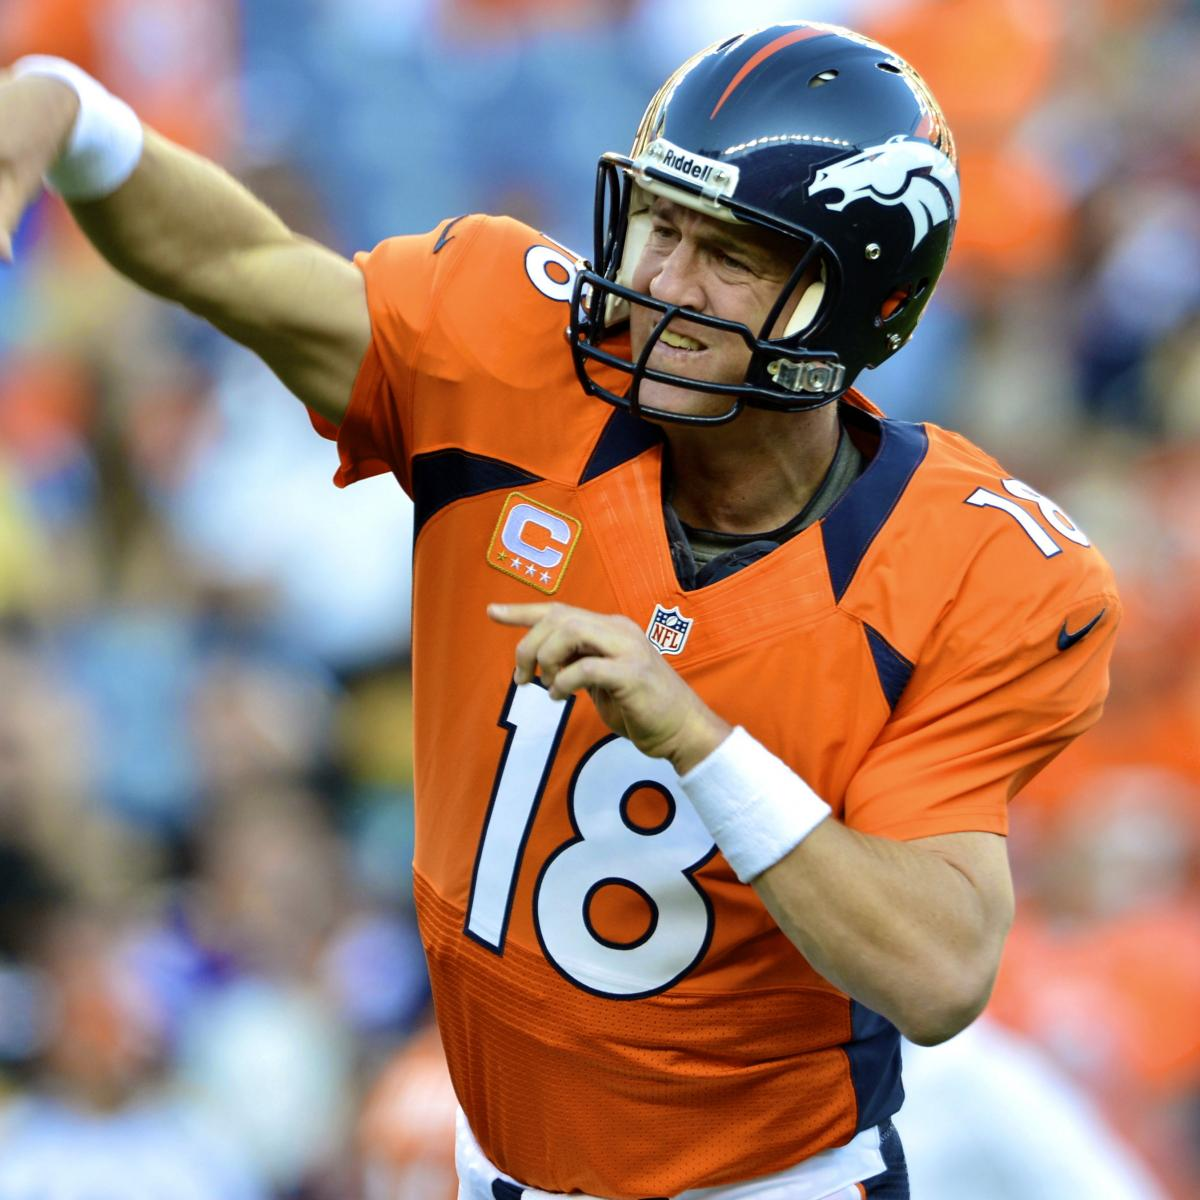 Pittsburgh Steelers Vs Denver Broncos: Live Score